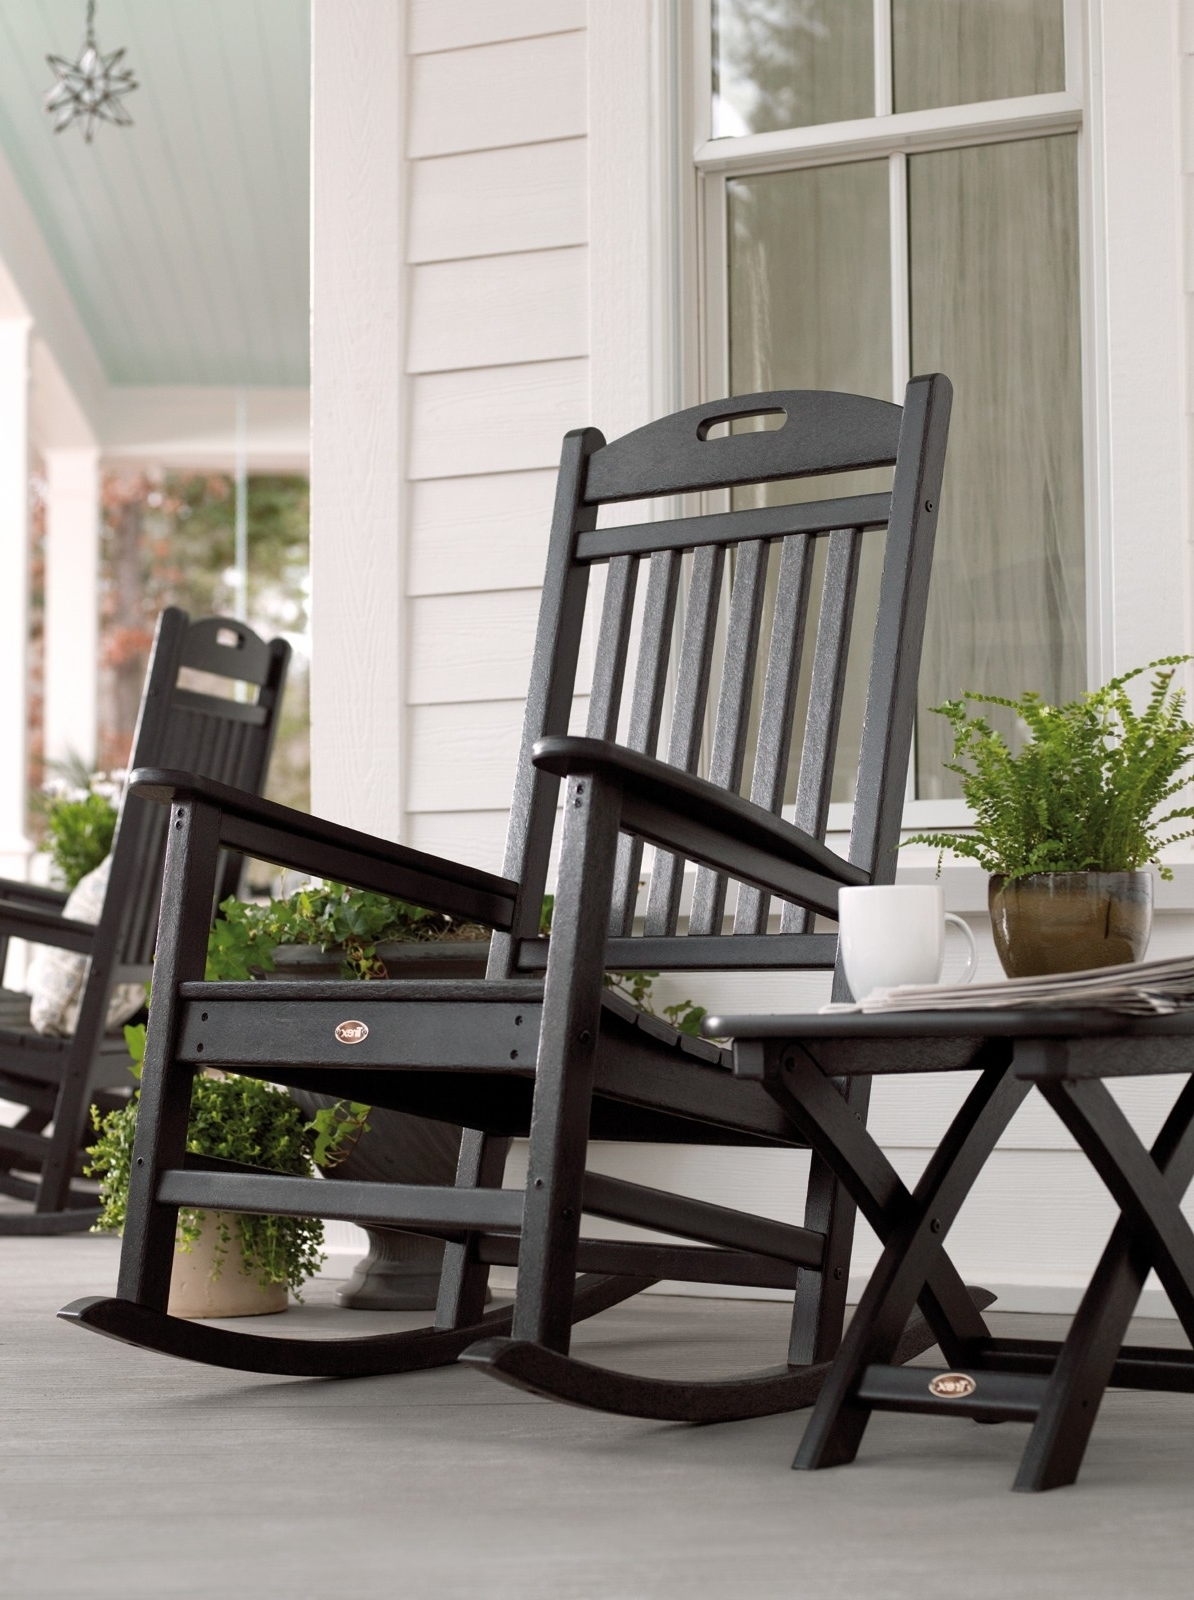 Vintage Outdoor Rocking Chairs With Regard To Latest Patio & Garden : Rocking Chairs For Outdoors Amazing Amazon Merry (View 12 of 15)